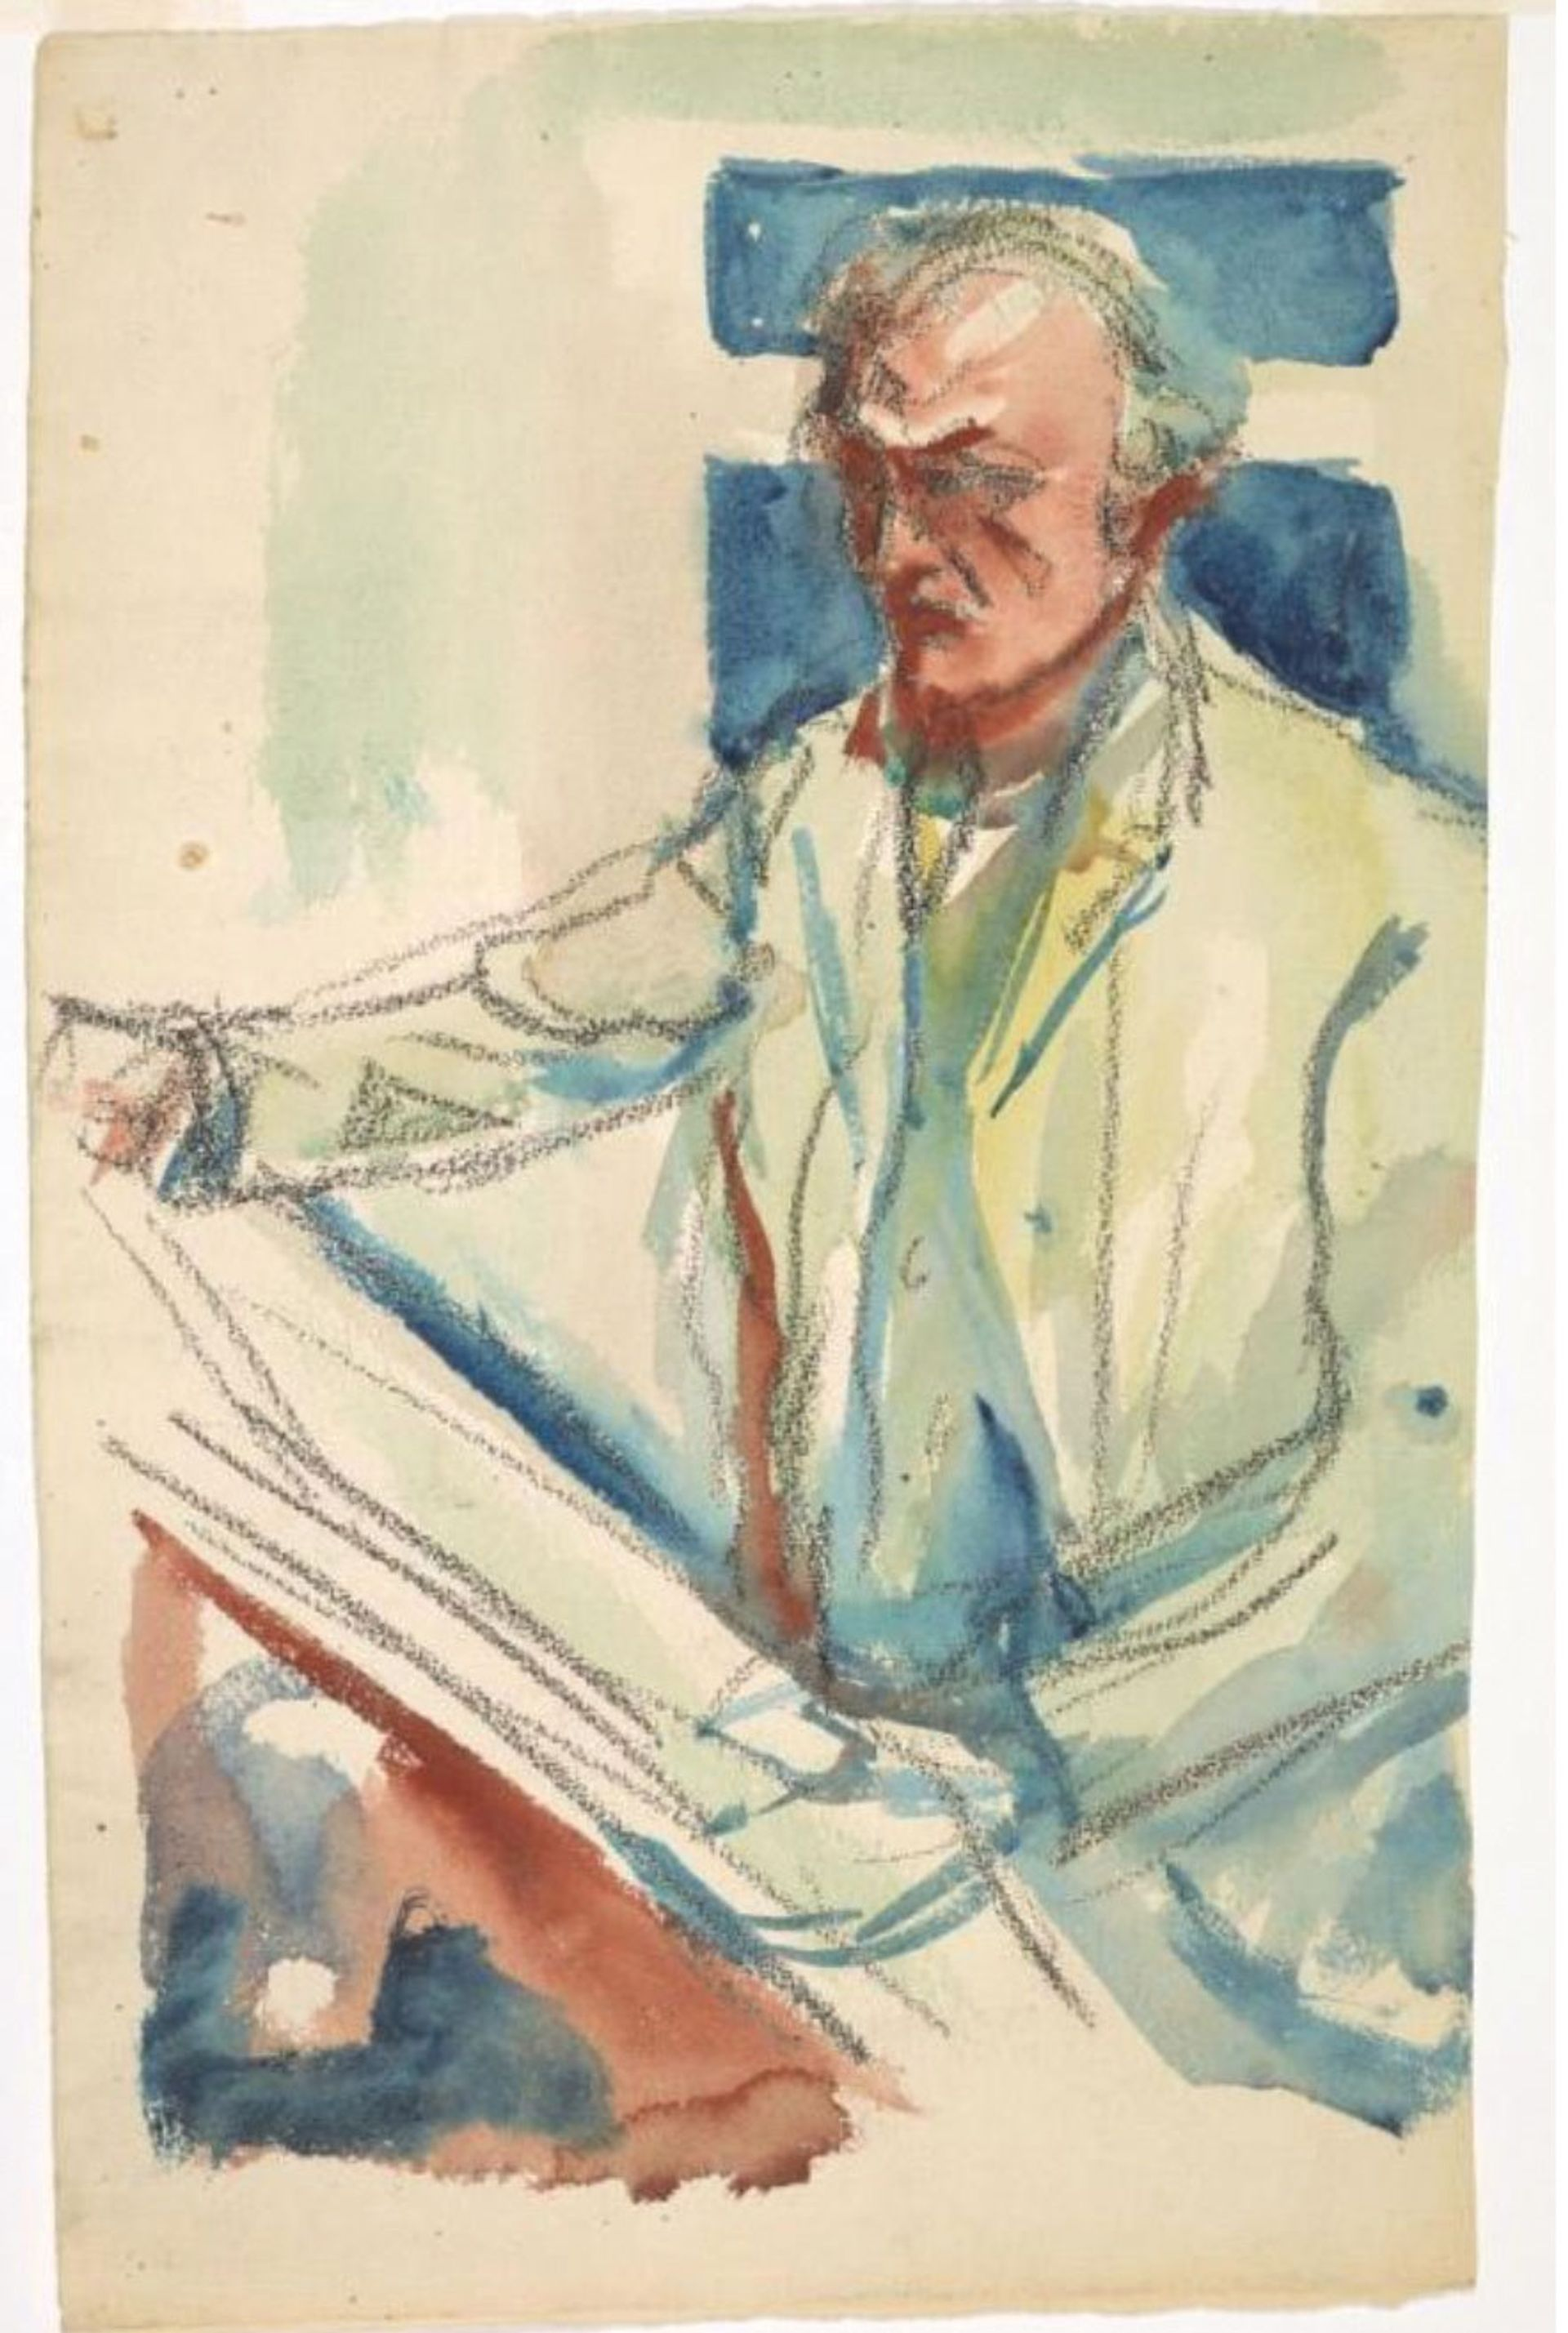 Munch's Self-portrait with Sketchbook (1914-19) is part of the new online database Munch Museum